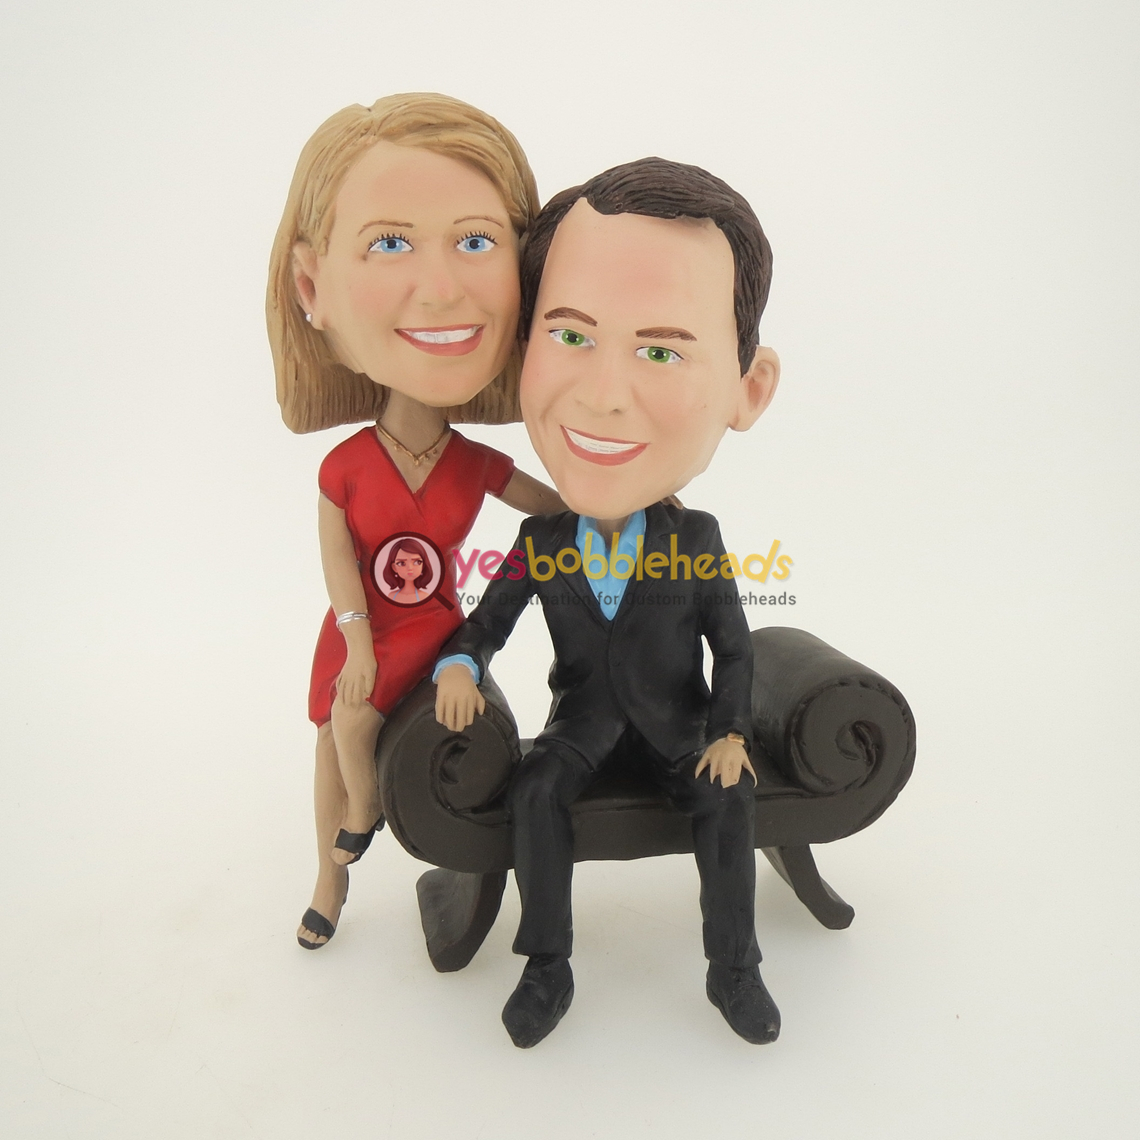 Picture of Custom Bobblehead Doll: Man in Sofa Couple